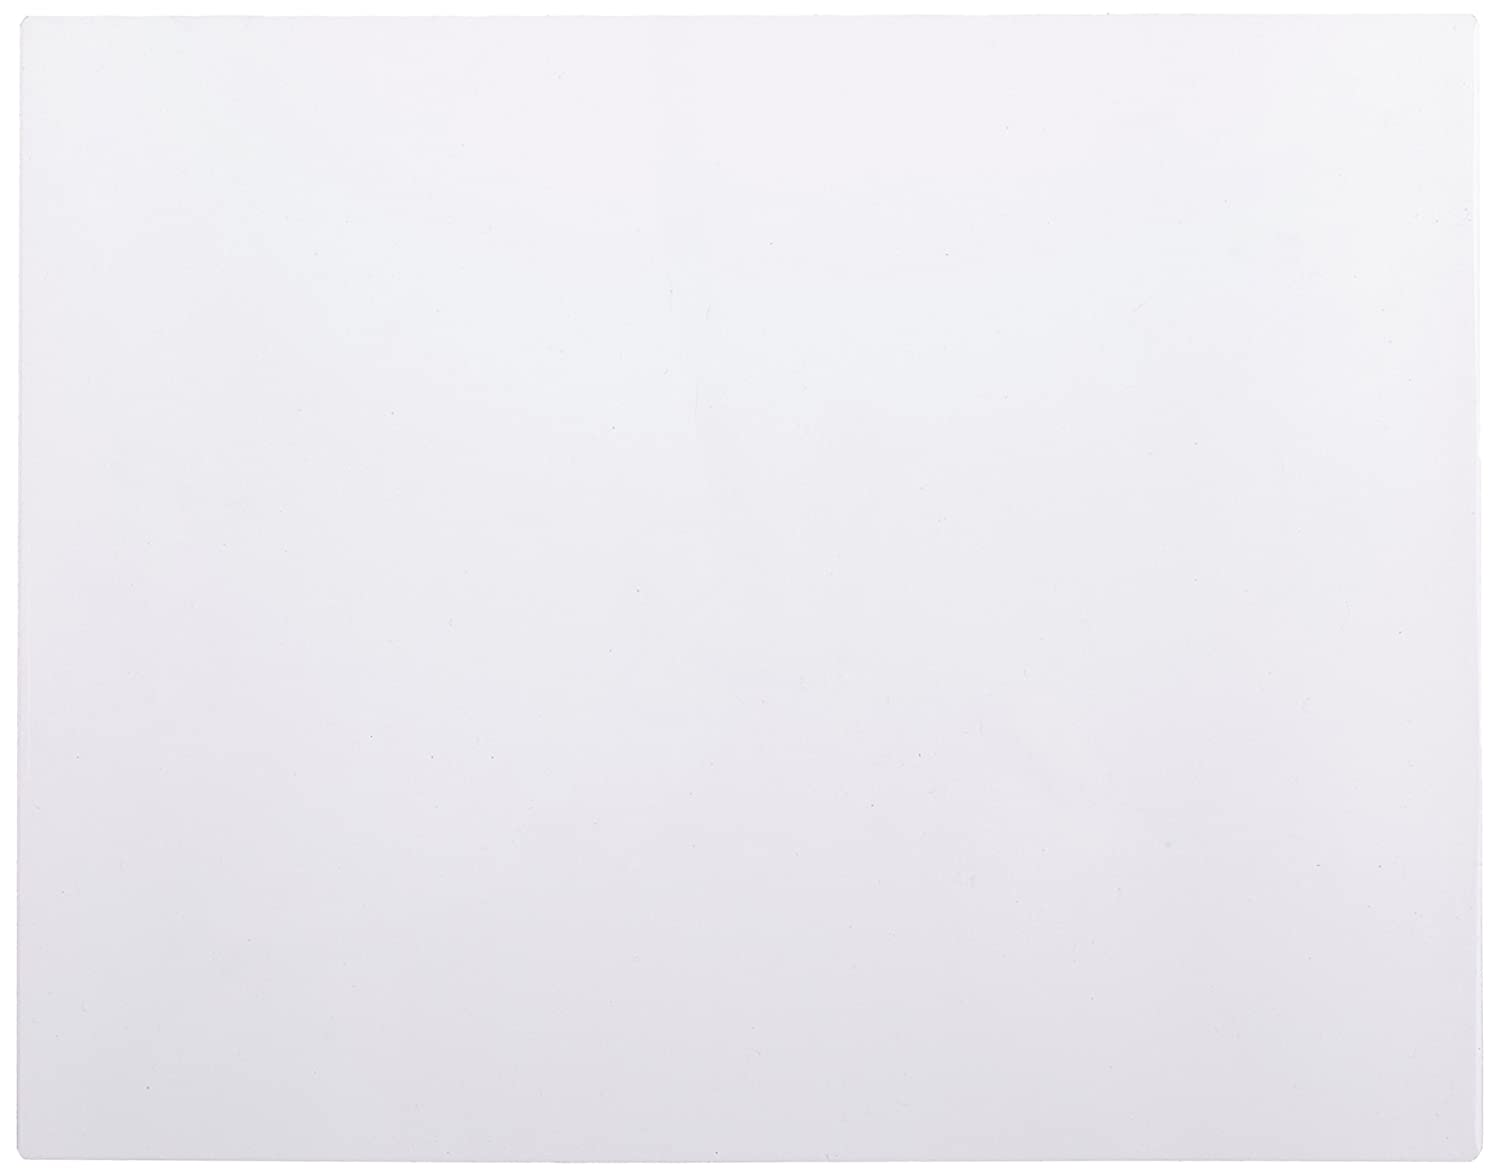 TruLam 10 Mil 9 x 11-1/2 Inches Letter Laminating Pouches, 50 per Box (LP10LTR)